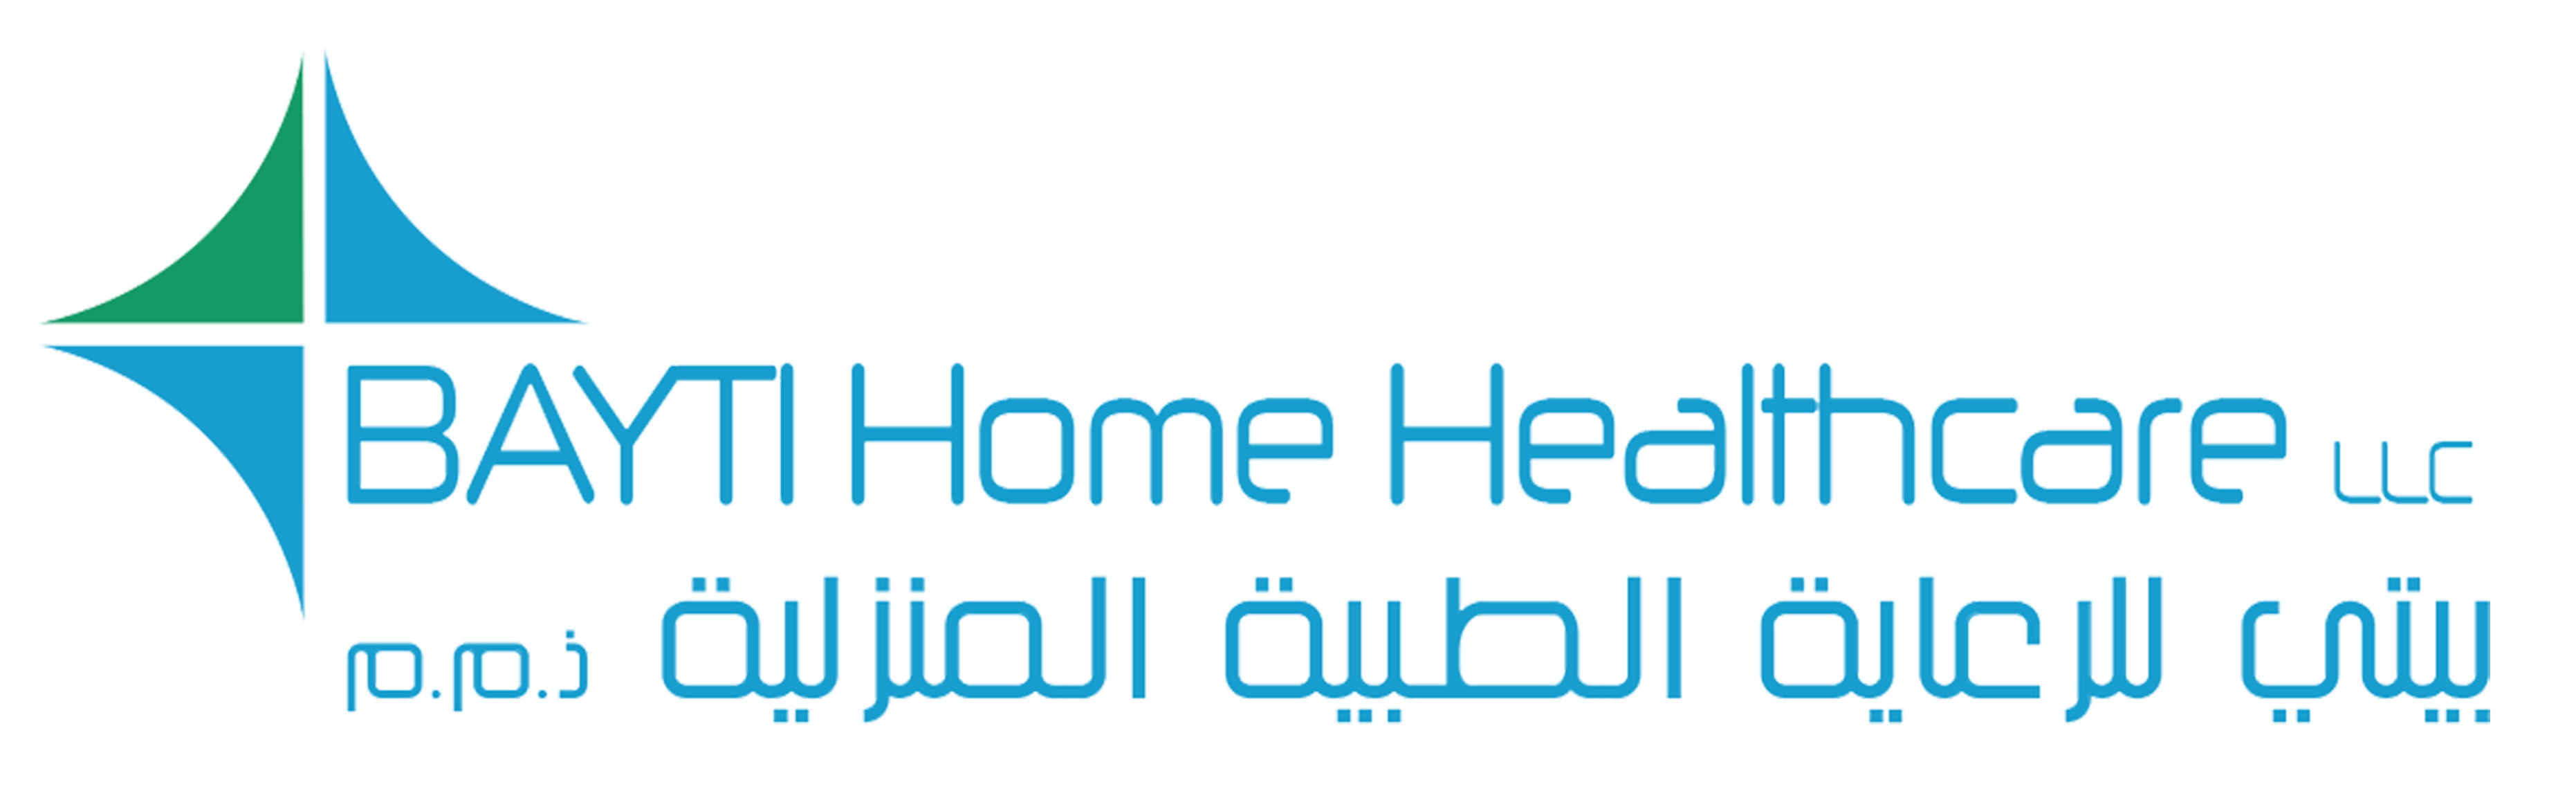 Bayti Home Healthcare LLC